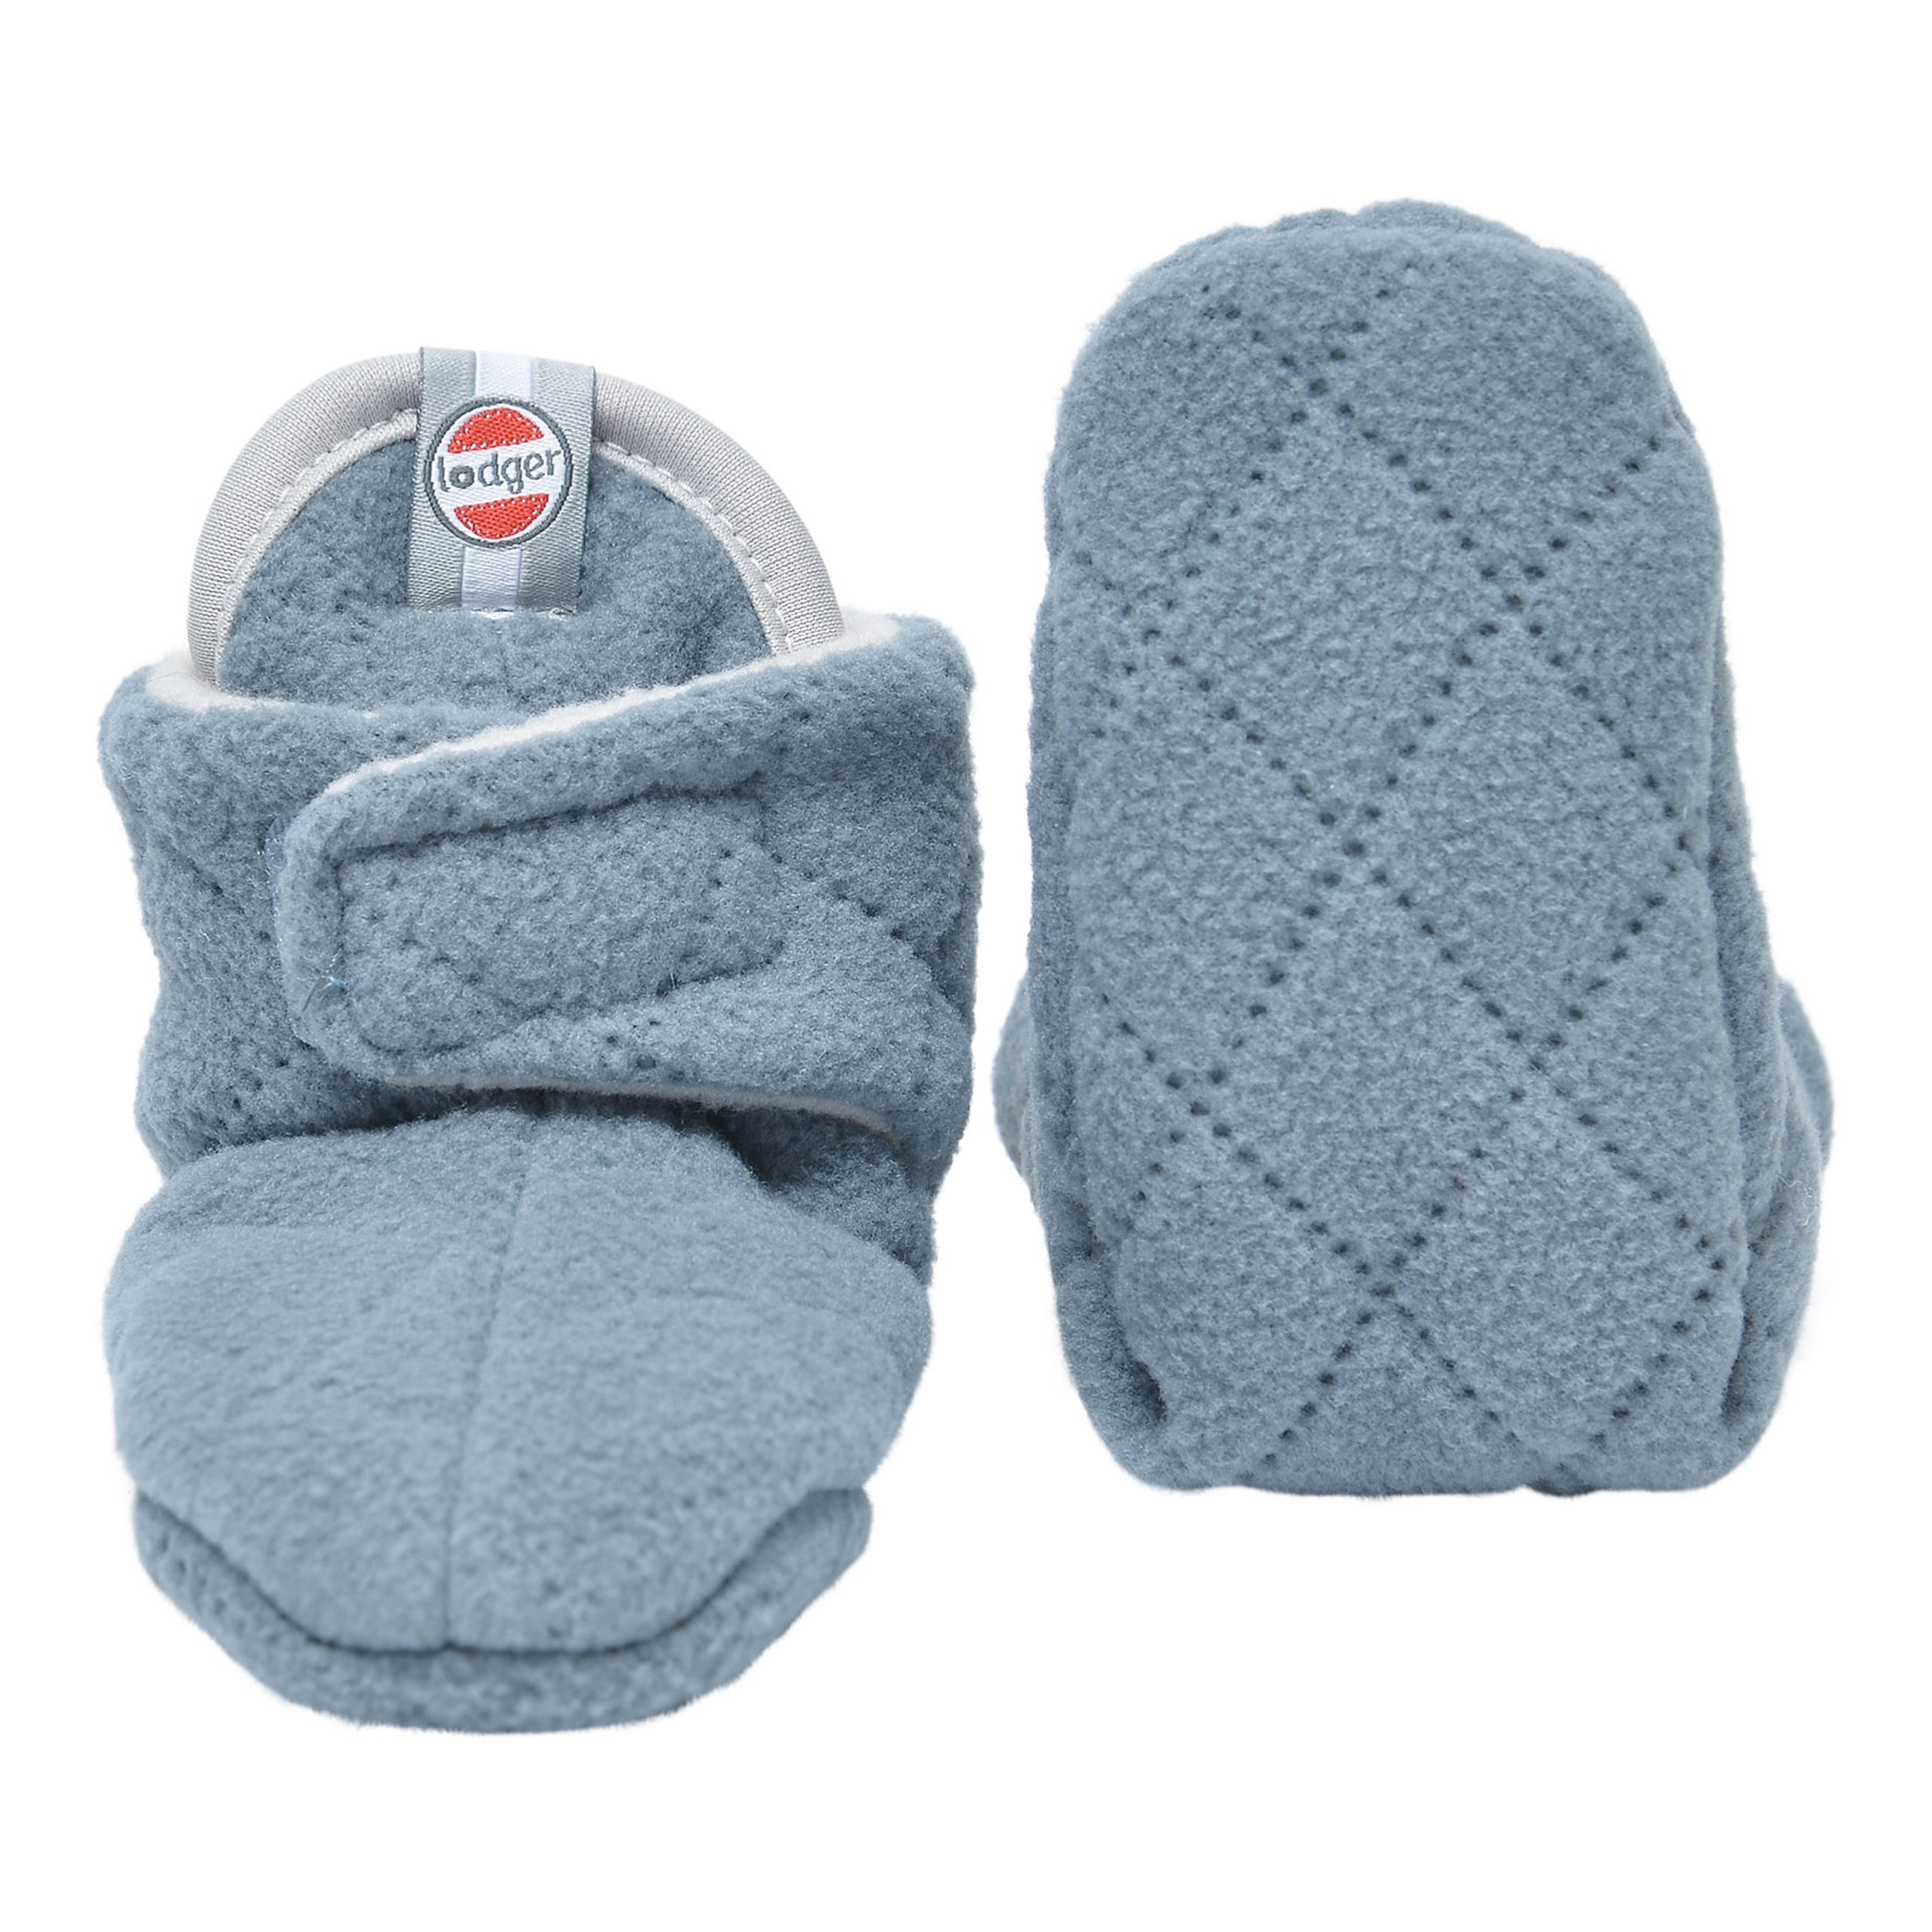 5e819a705c6a6 Lodger Slipper, fleece lined baby slippers with grip soles for 0-18 months